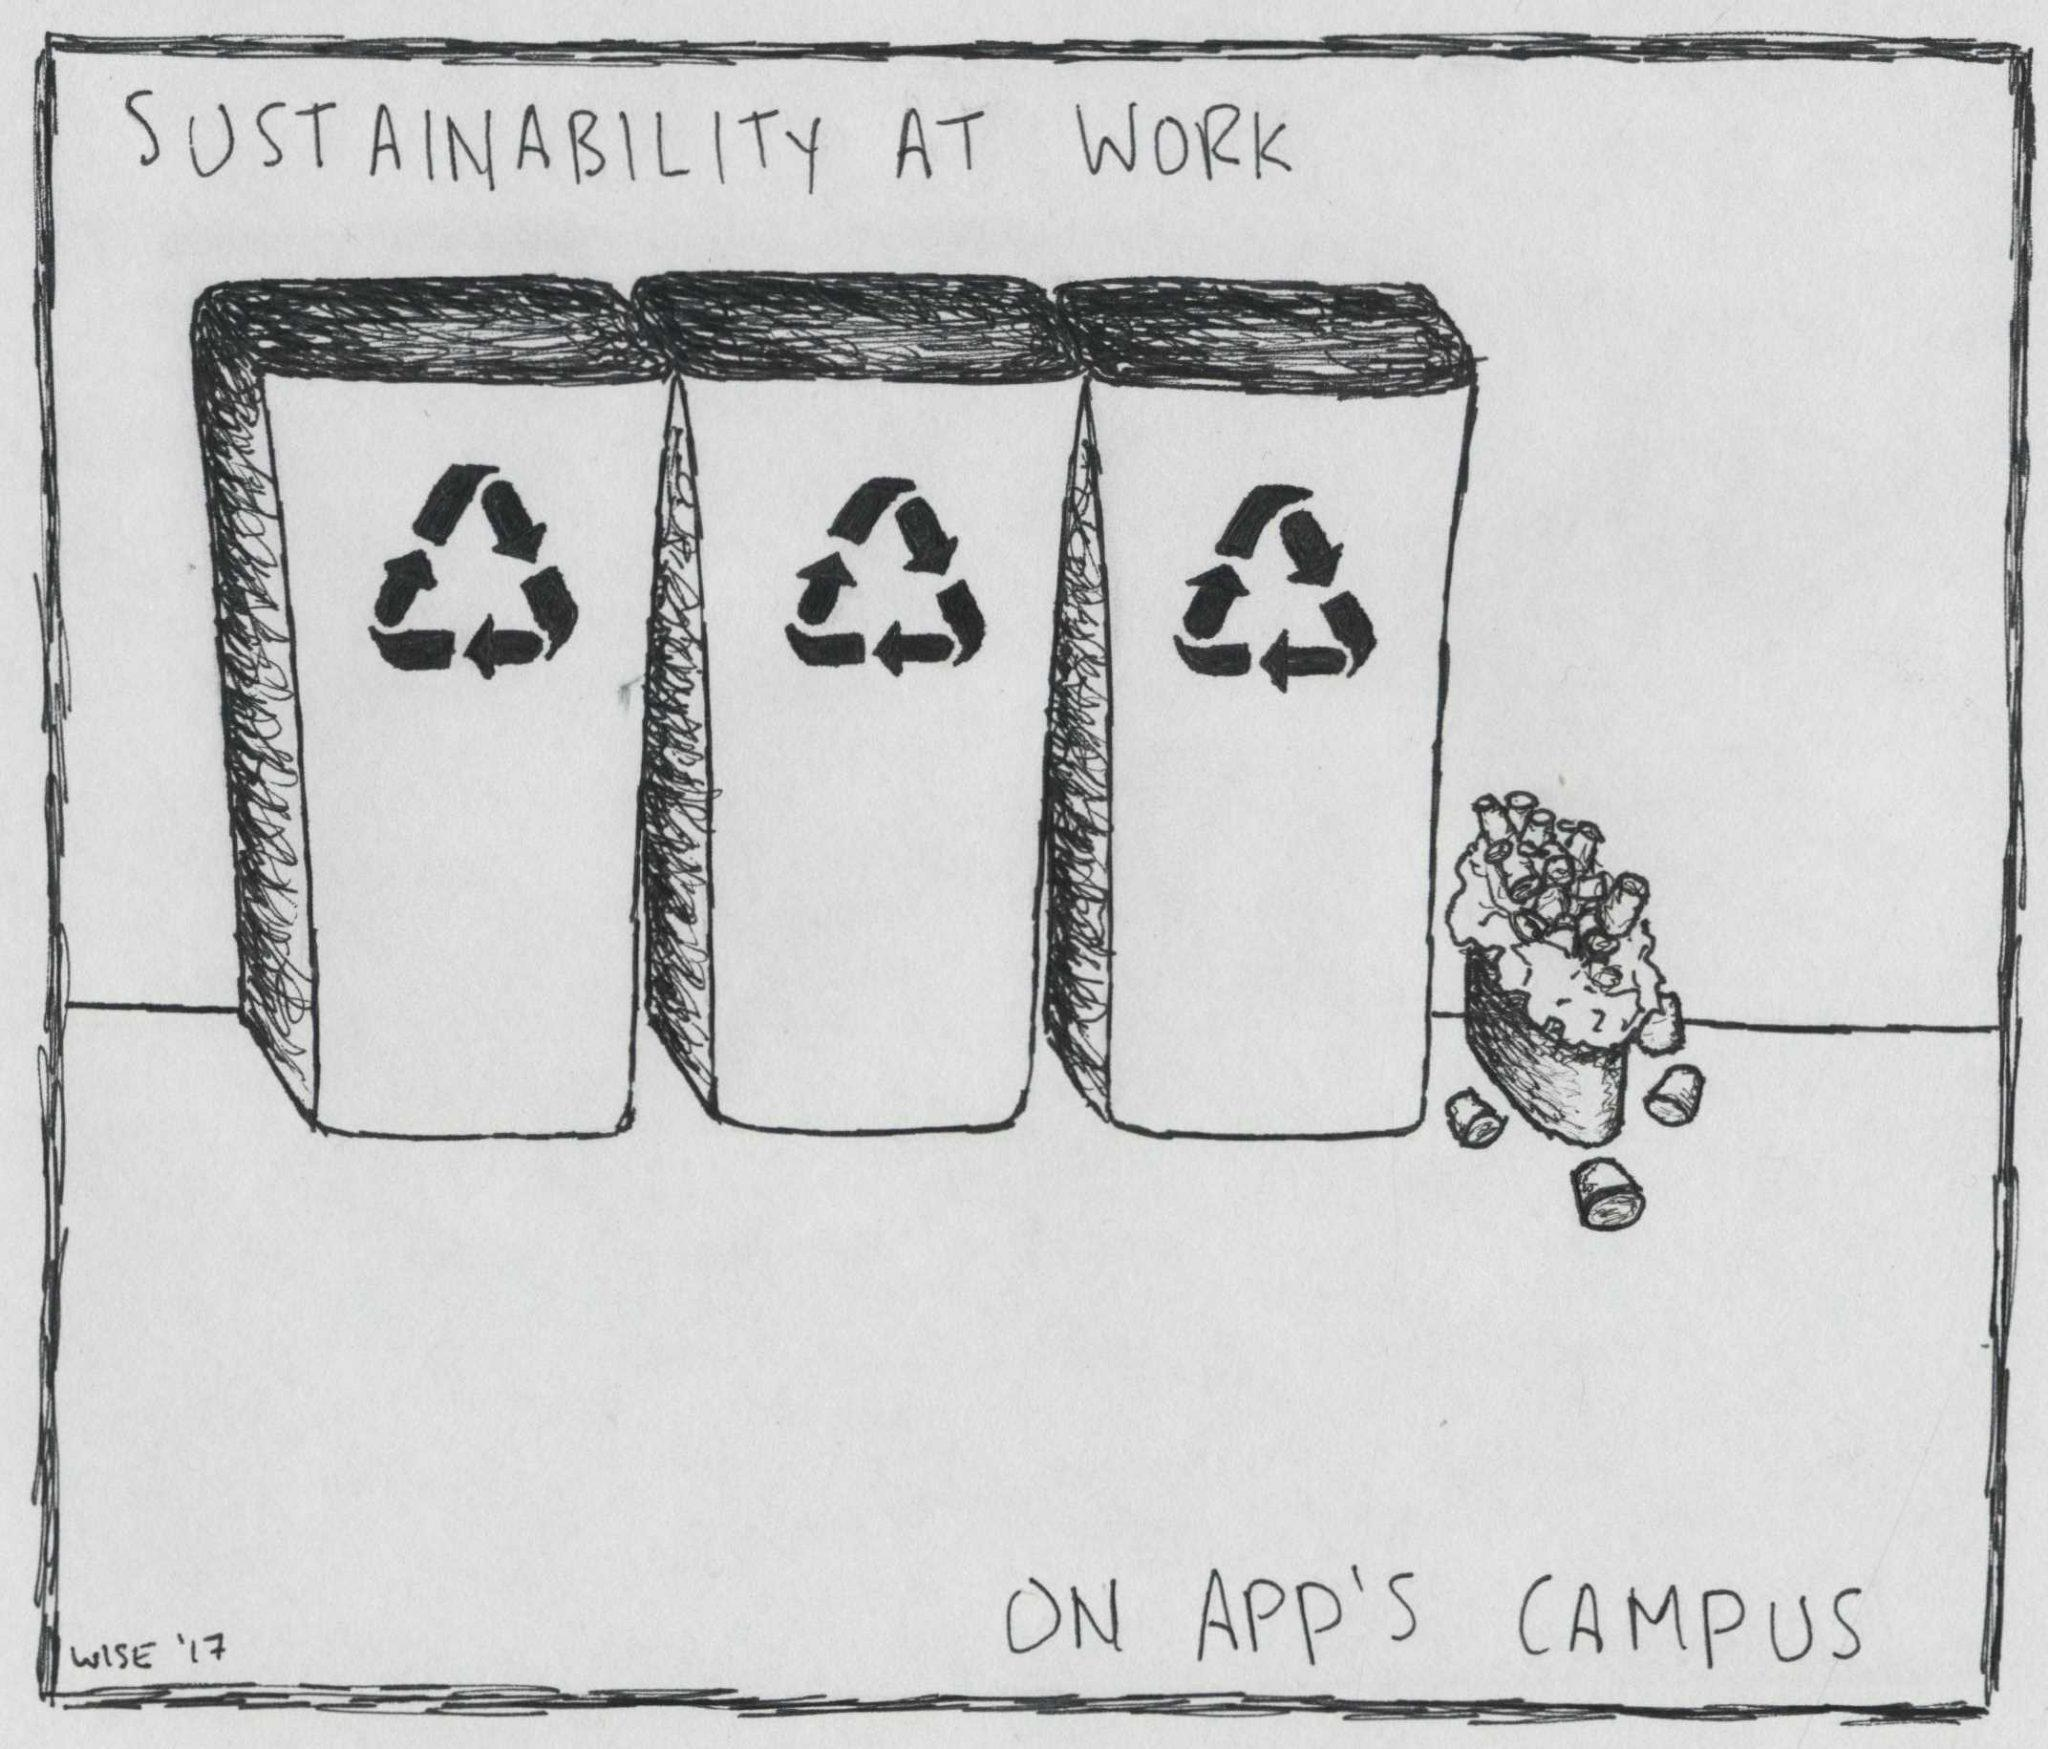 App state's sustainability message deterred by paper cups